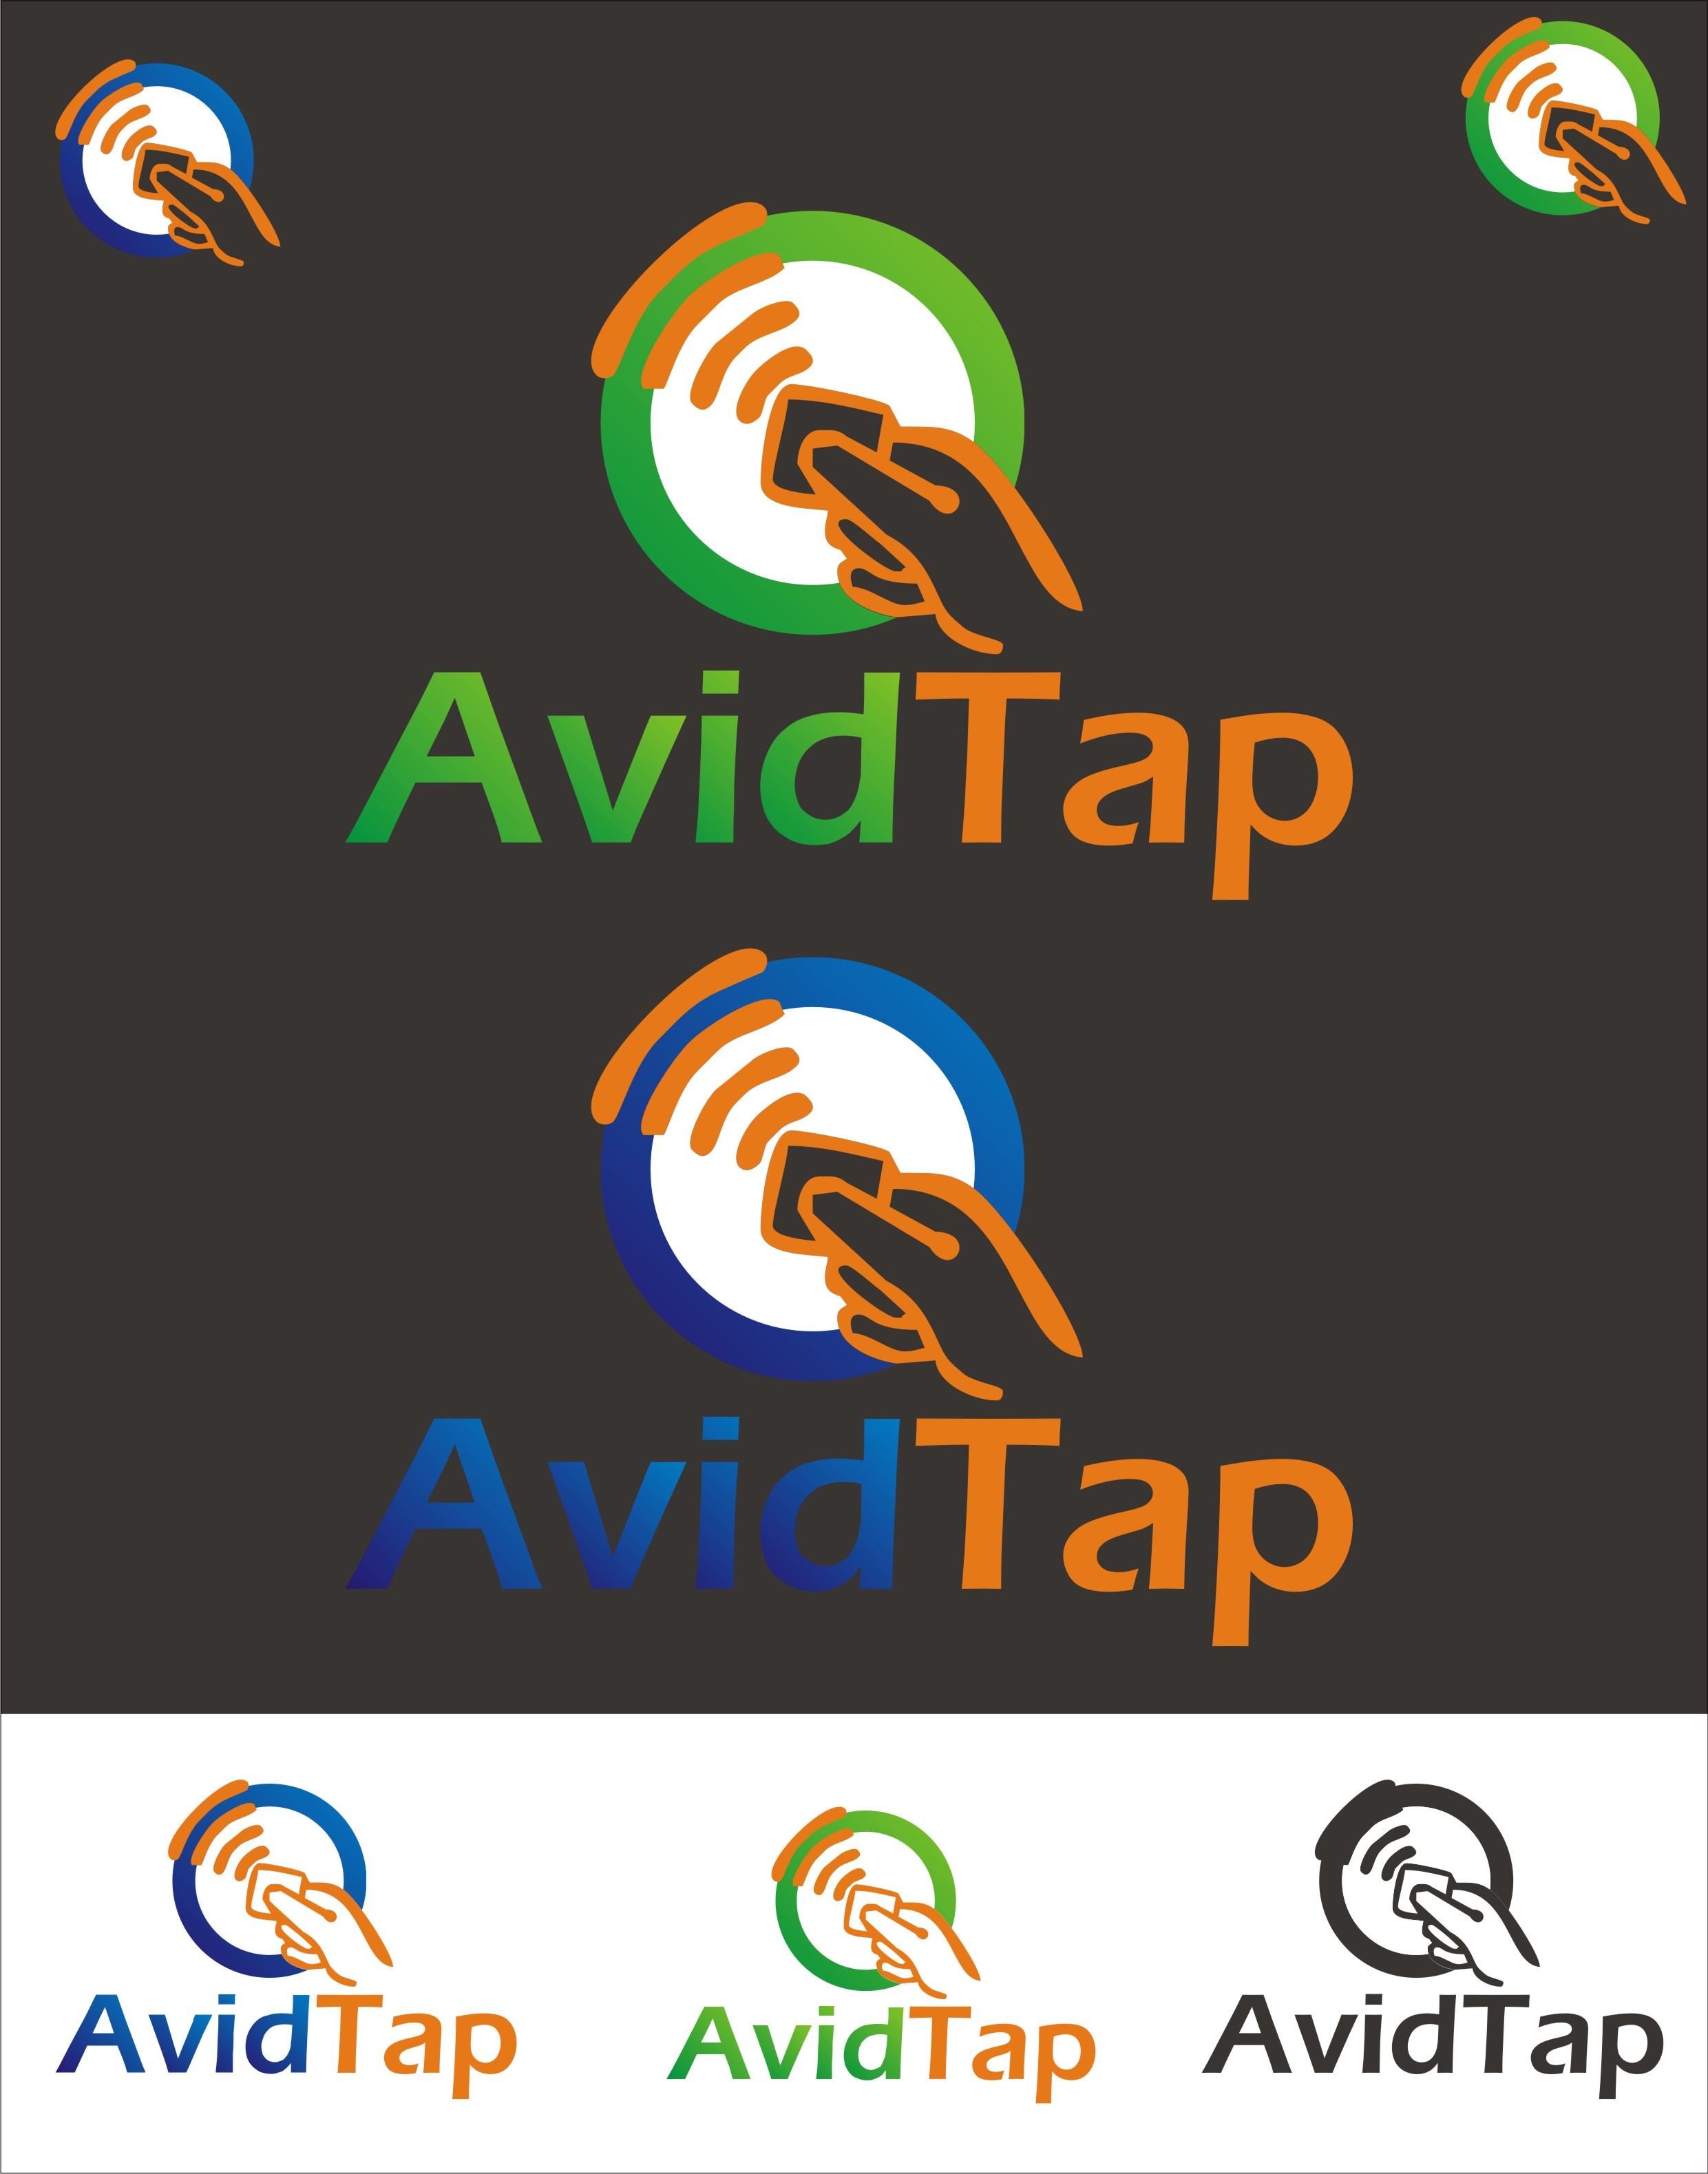 Logo Design by Candra Ardi - Entry No. 102 in the Logo Design Contest Imaginative Logo Design for AvidTap.